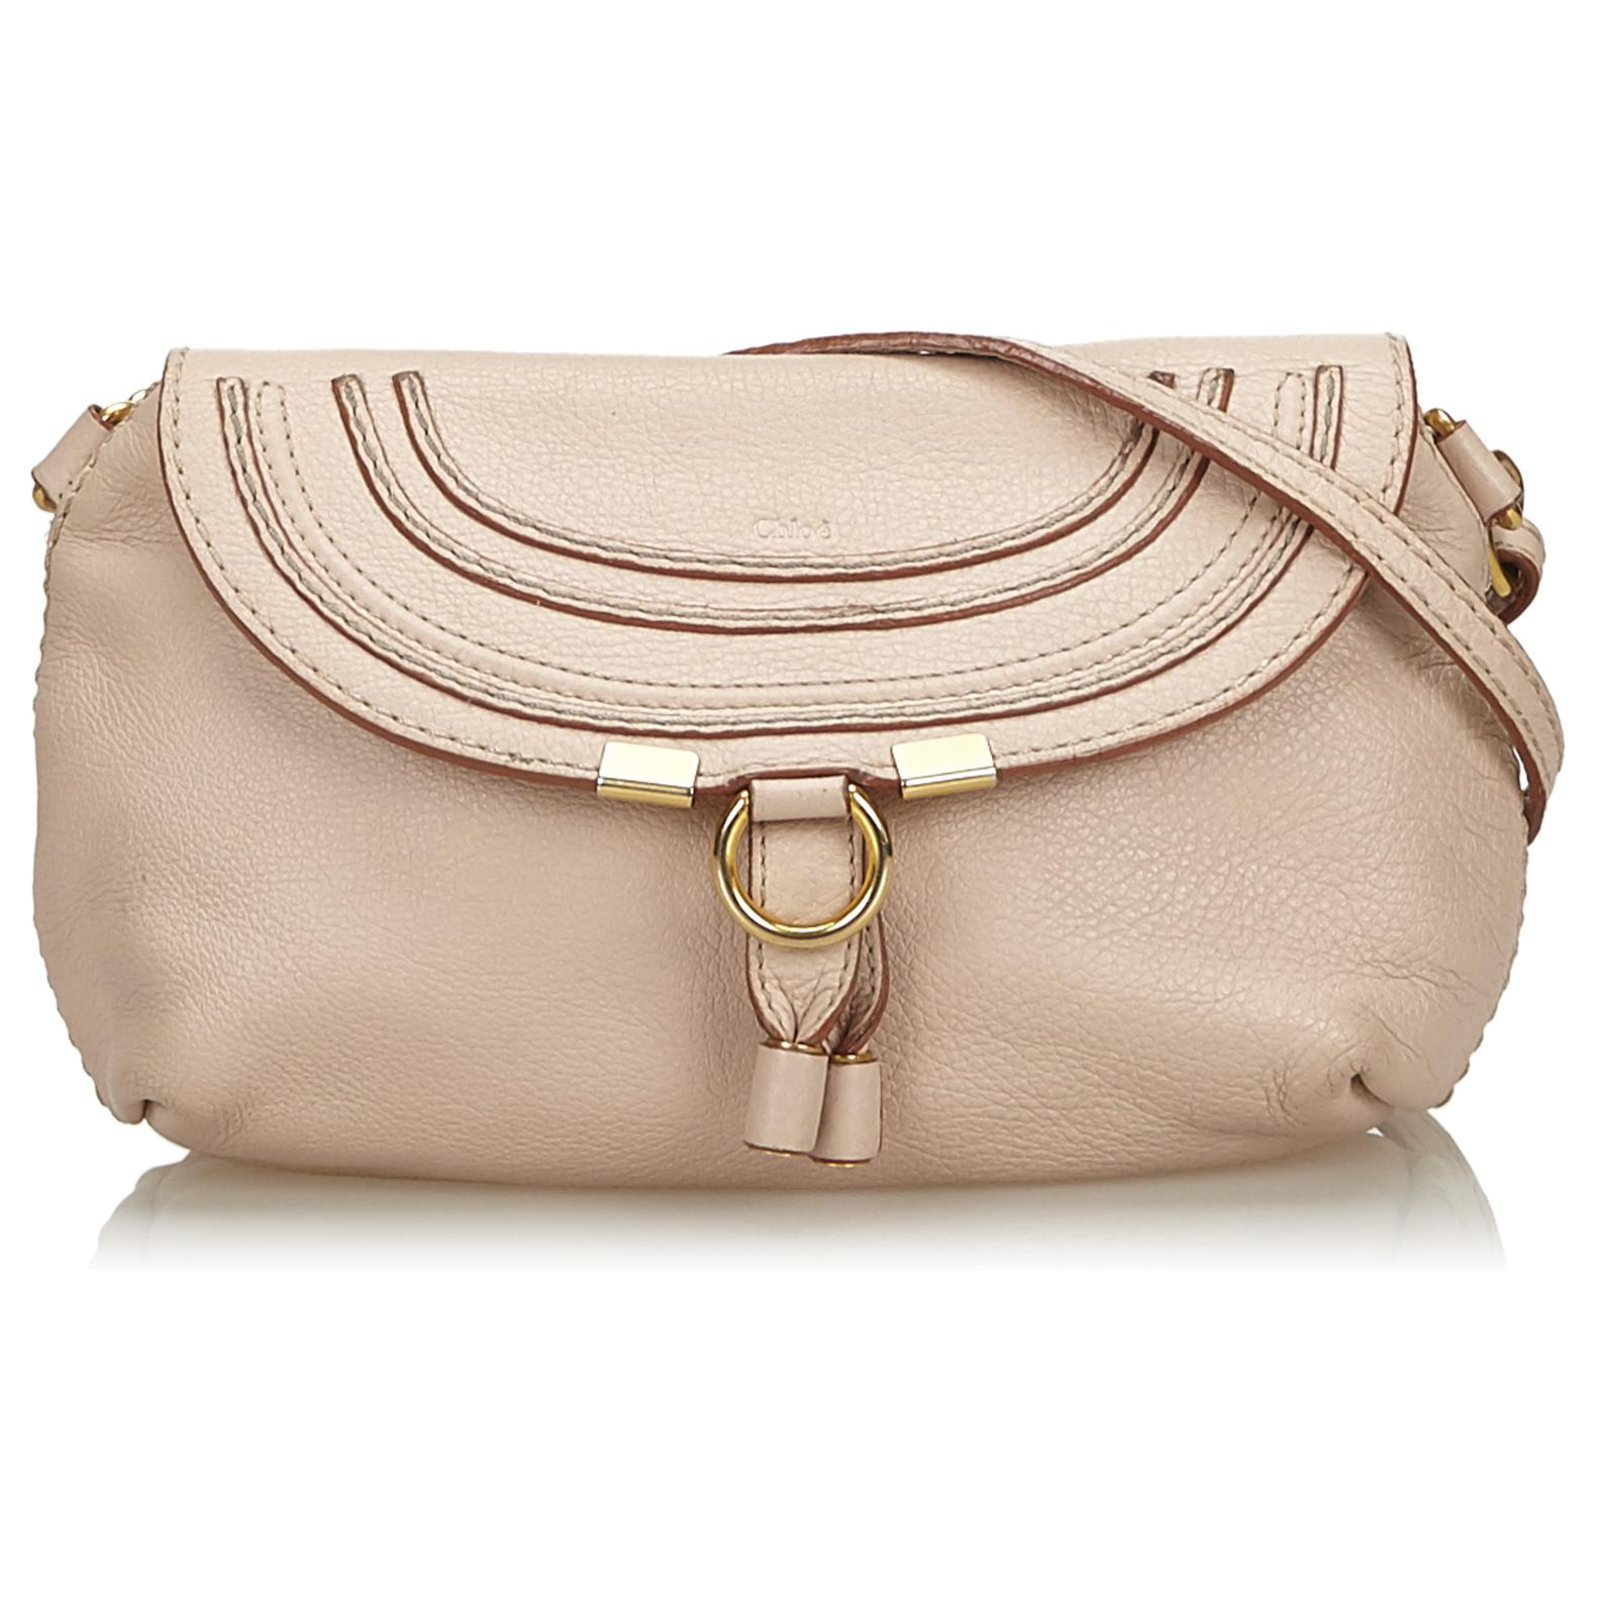 39f349e7 Chloe Brown Small Leather Marcie Crossbody Bag